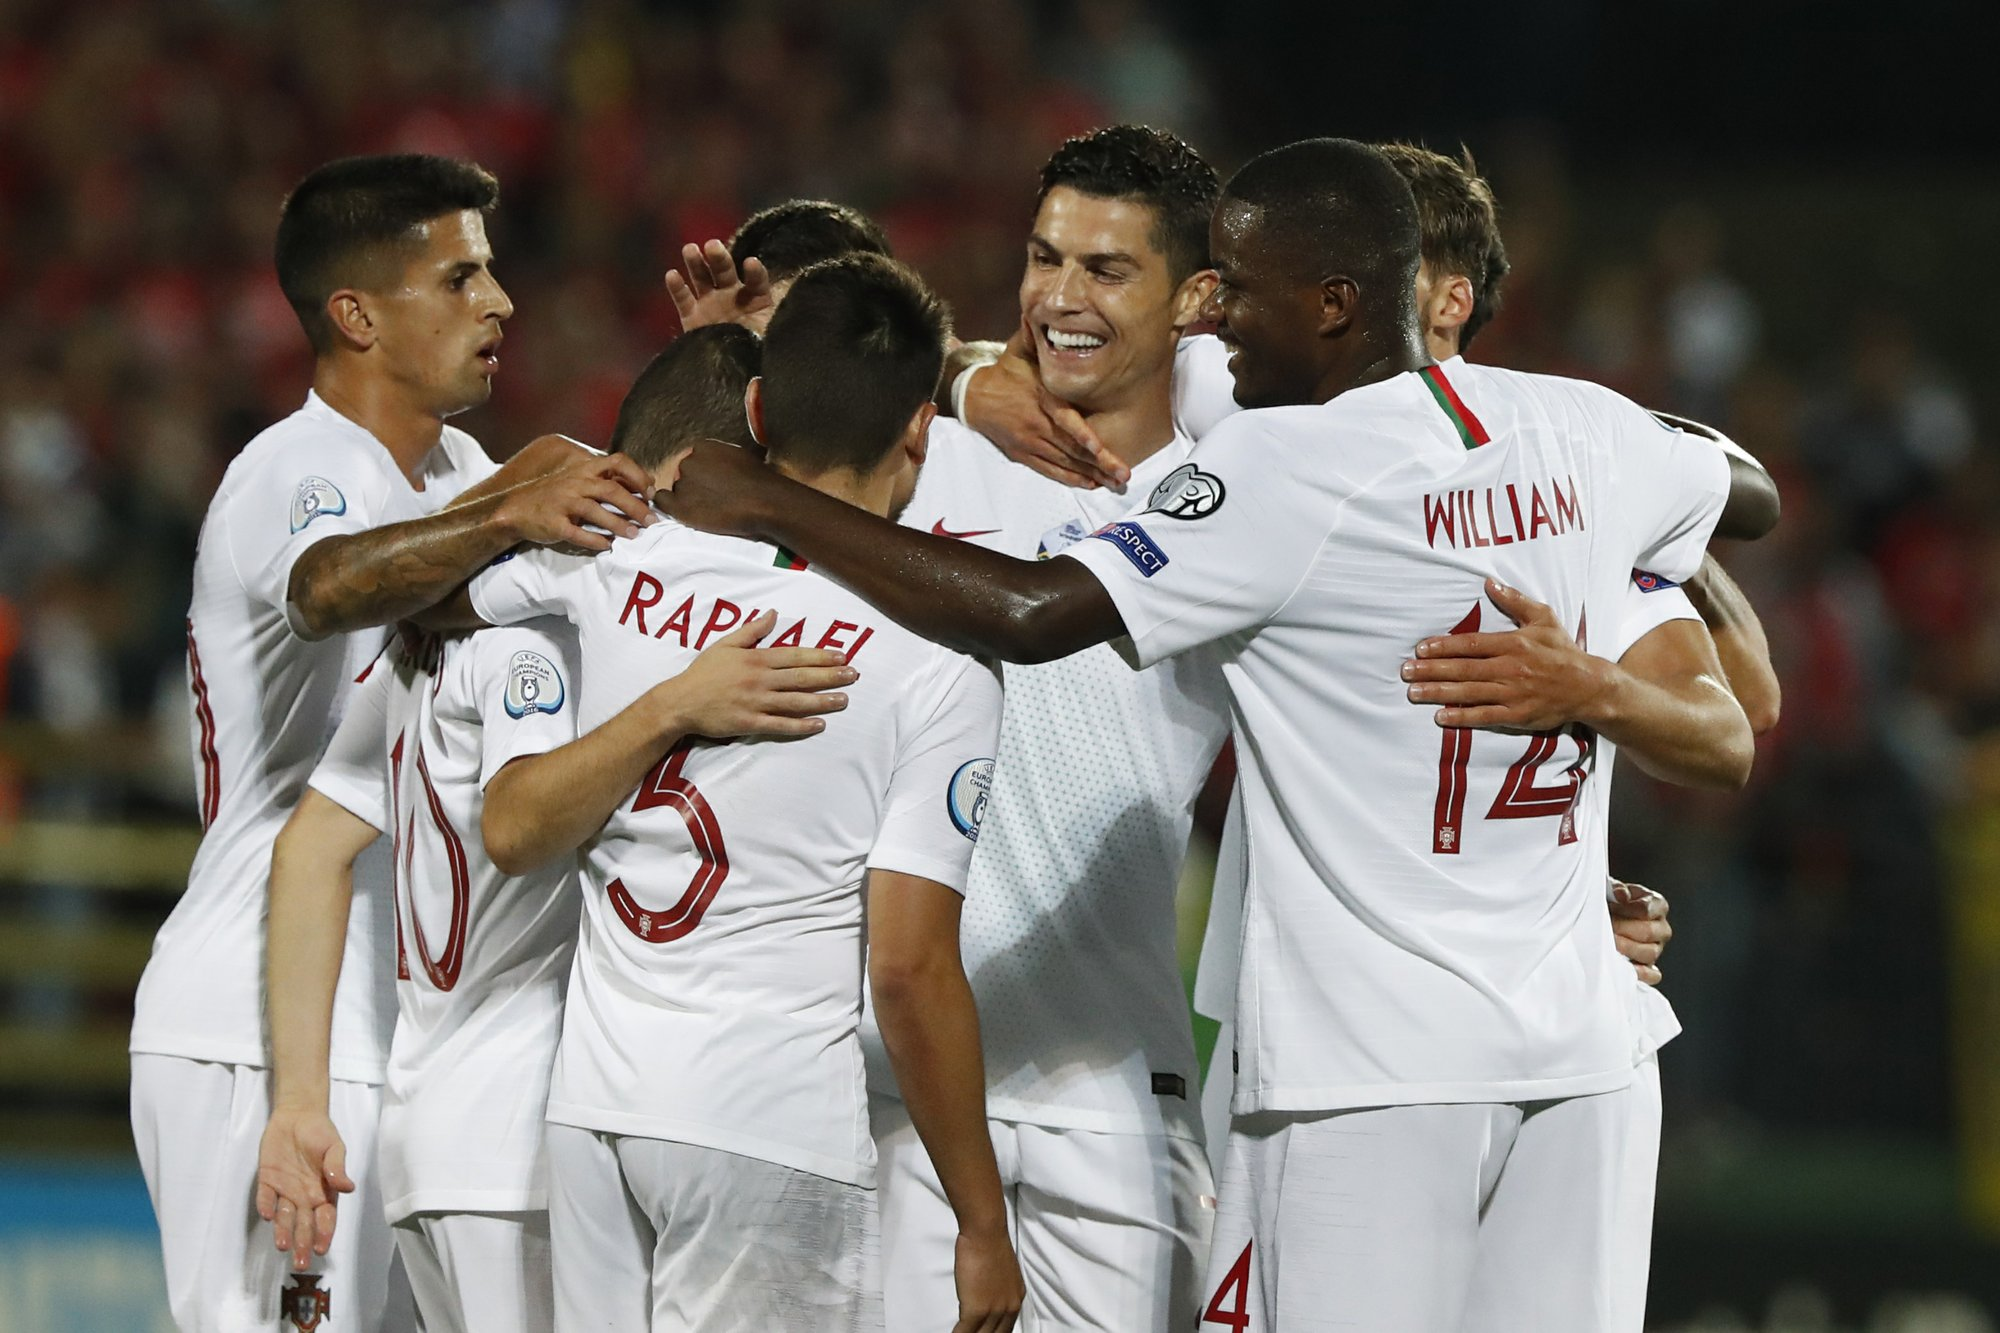 Portugal routs Lithuania 5-1 with 4 goals by Ronaldo